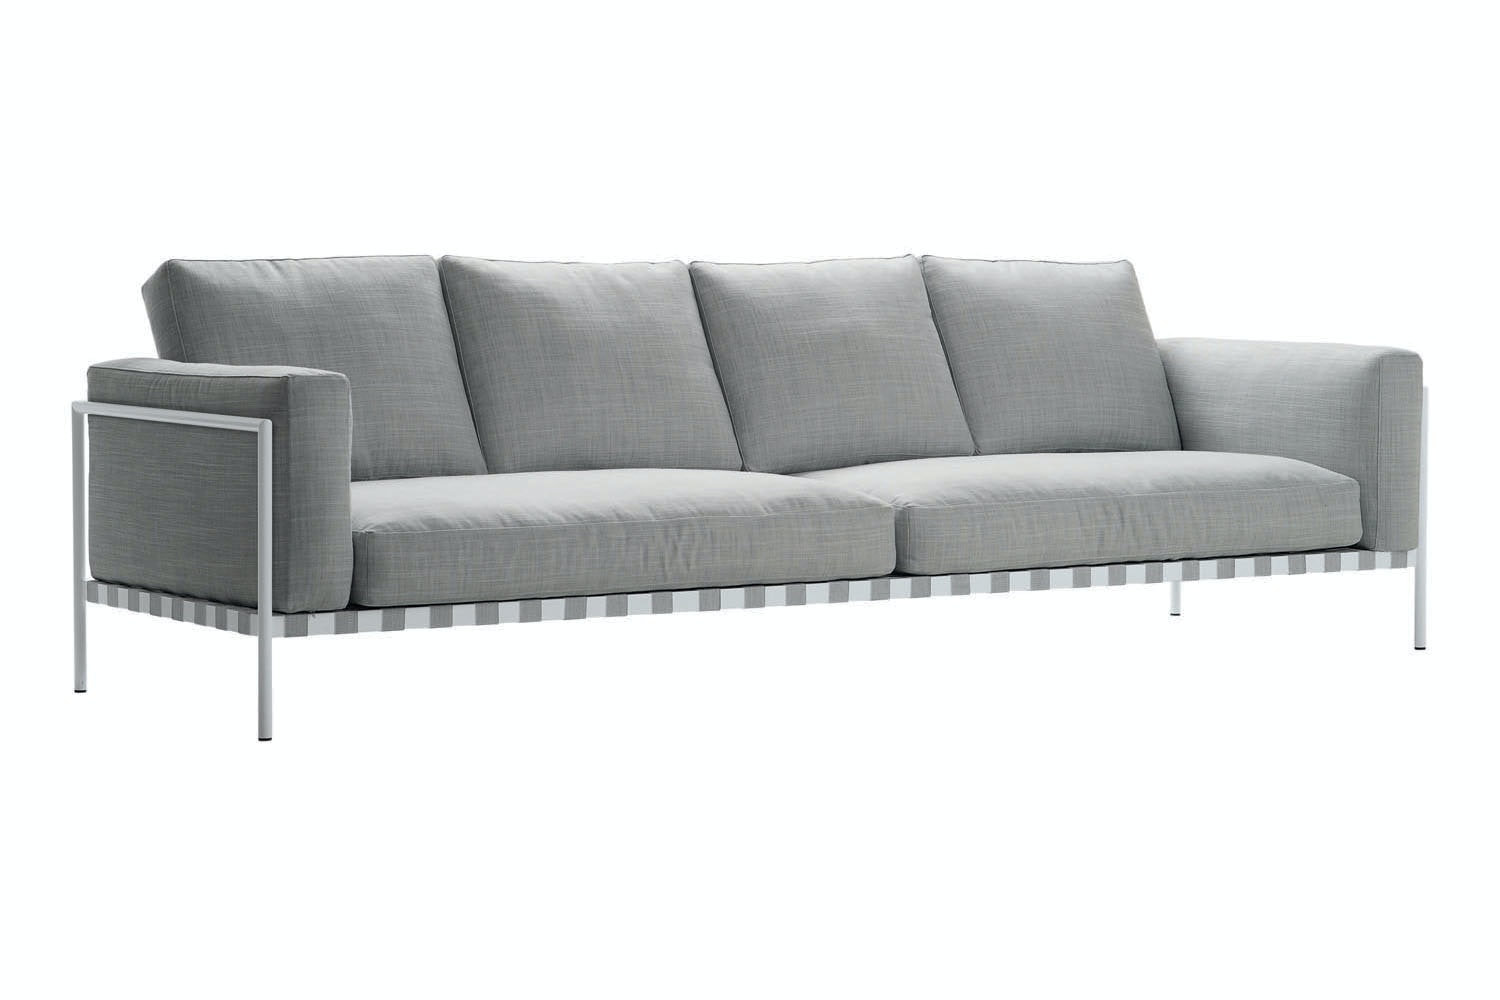 Parco Sofa by Emaf Progetti for Zanotta